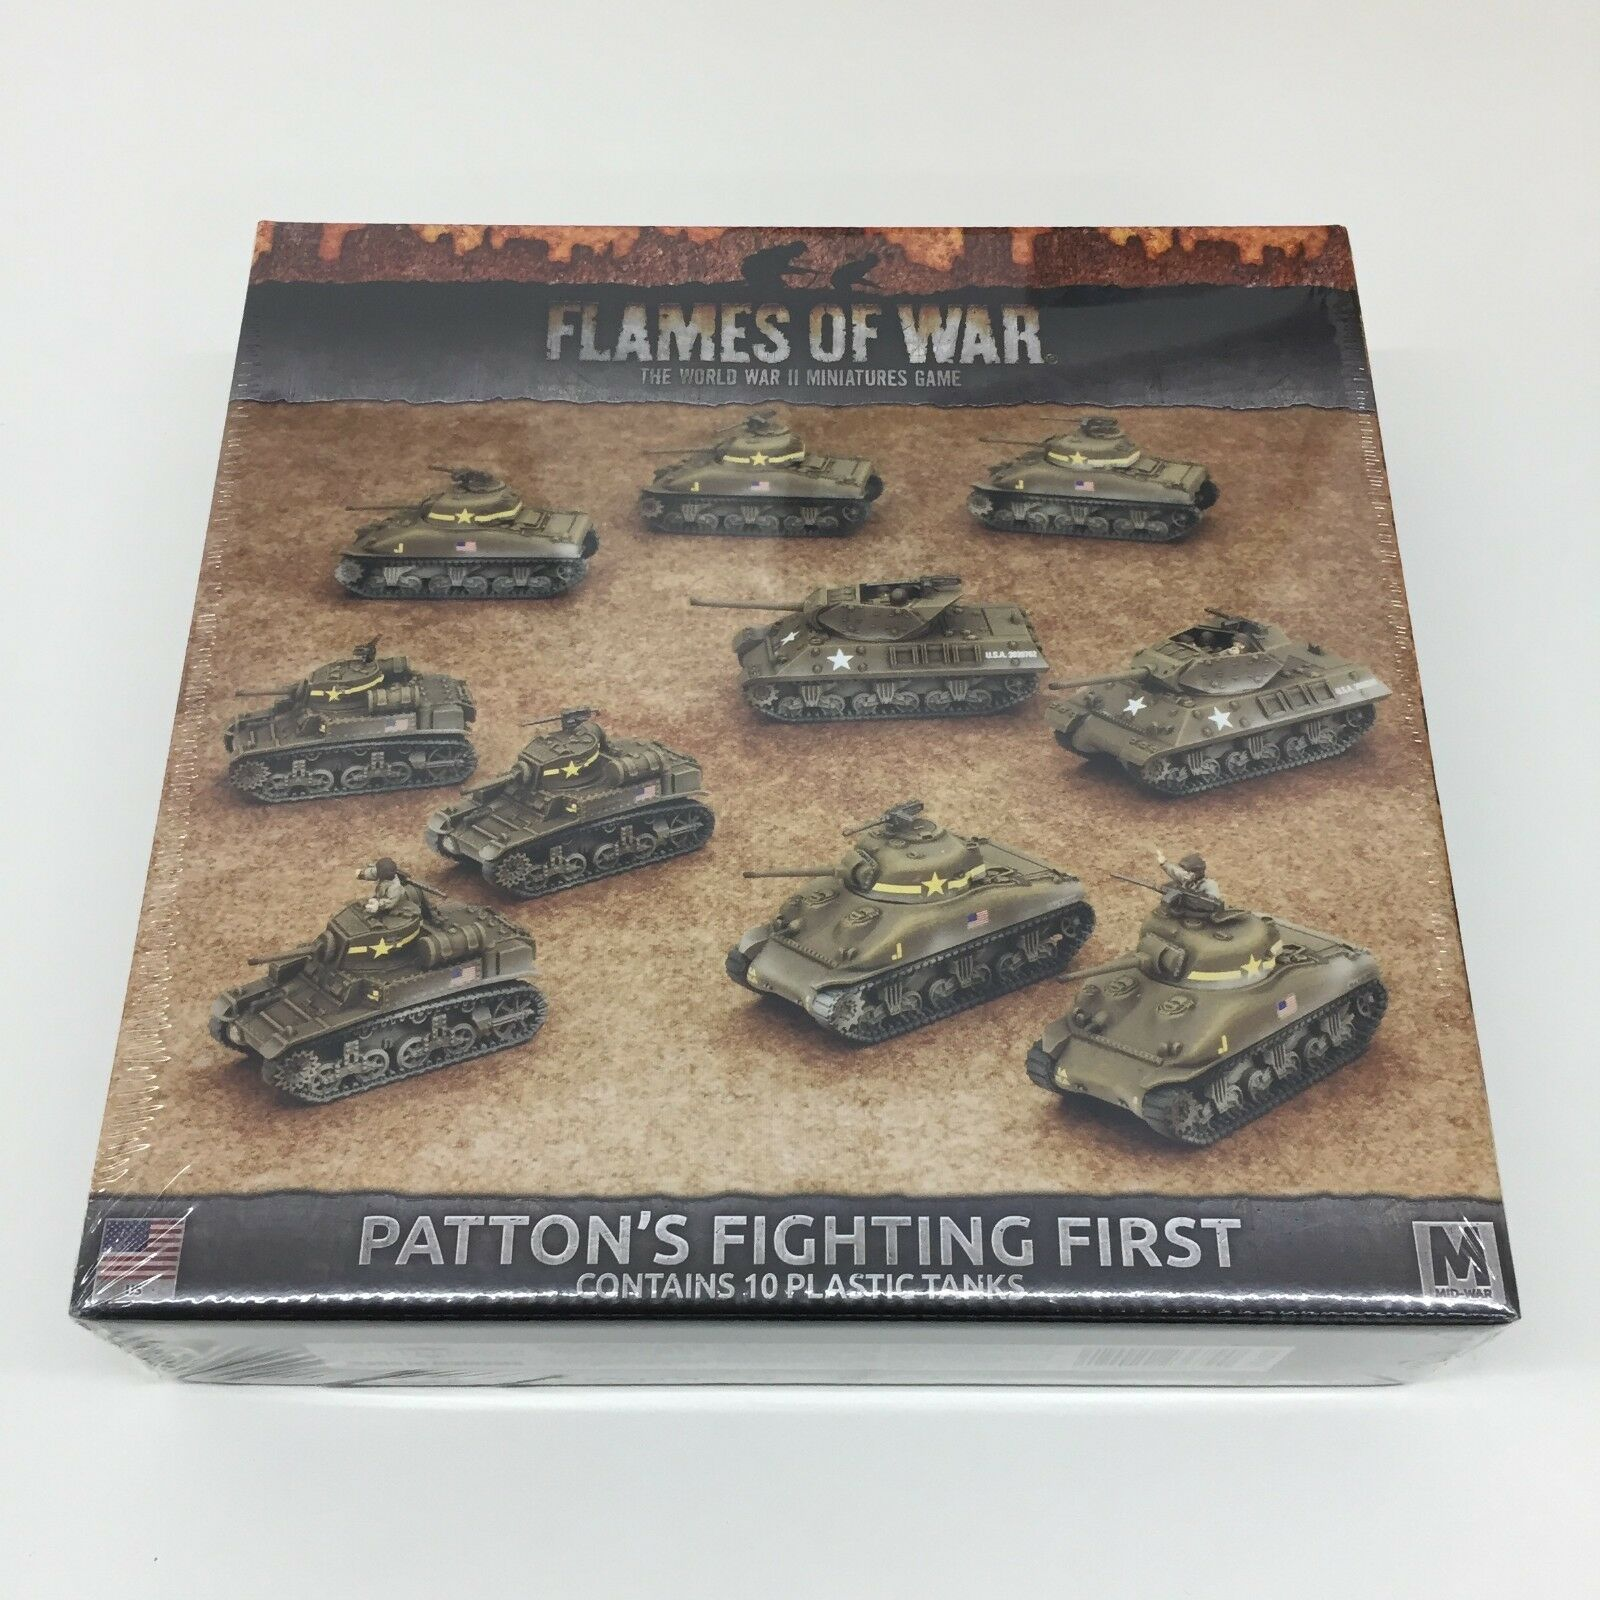 BATTLEFRONT FLAMES OF WAR PATTON'S FIGHTING FIRST BOX (NEW) WORLD WAR II WWII